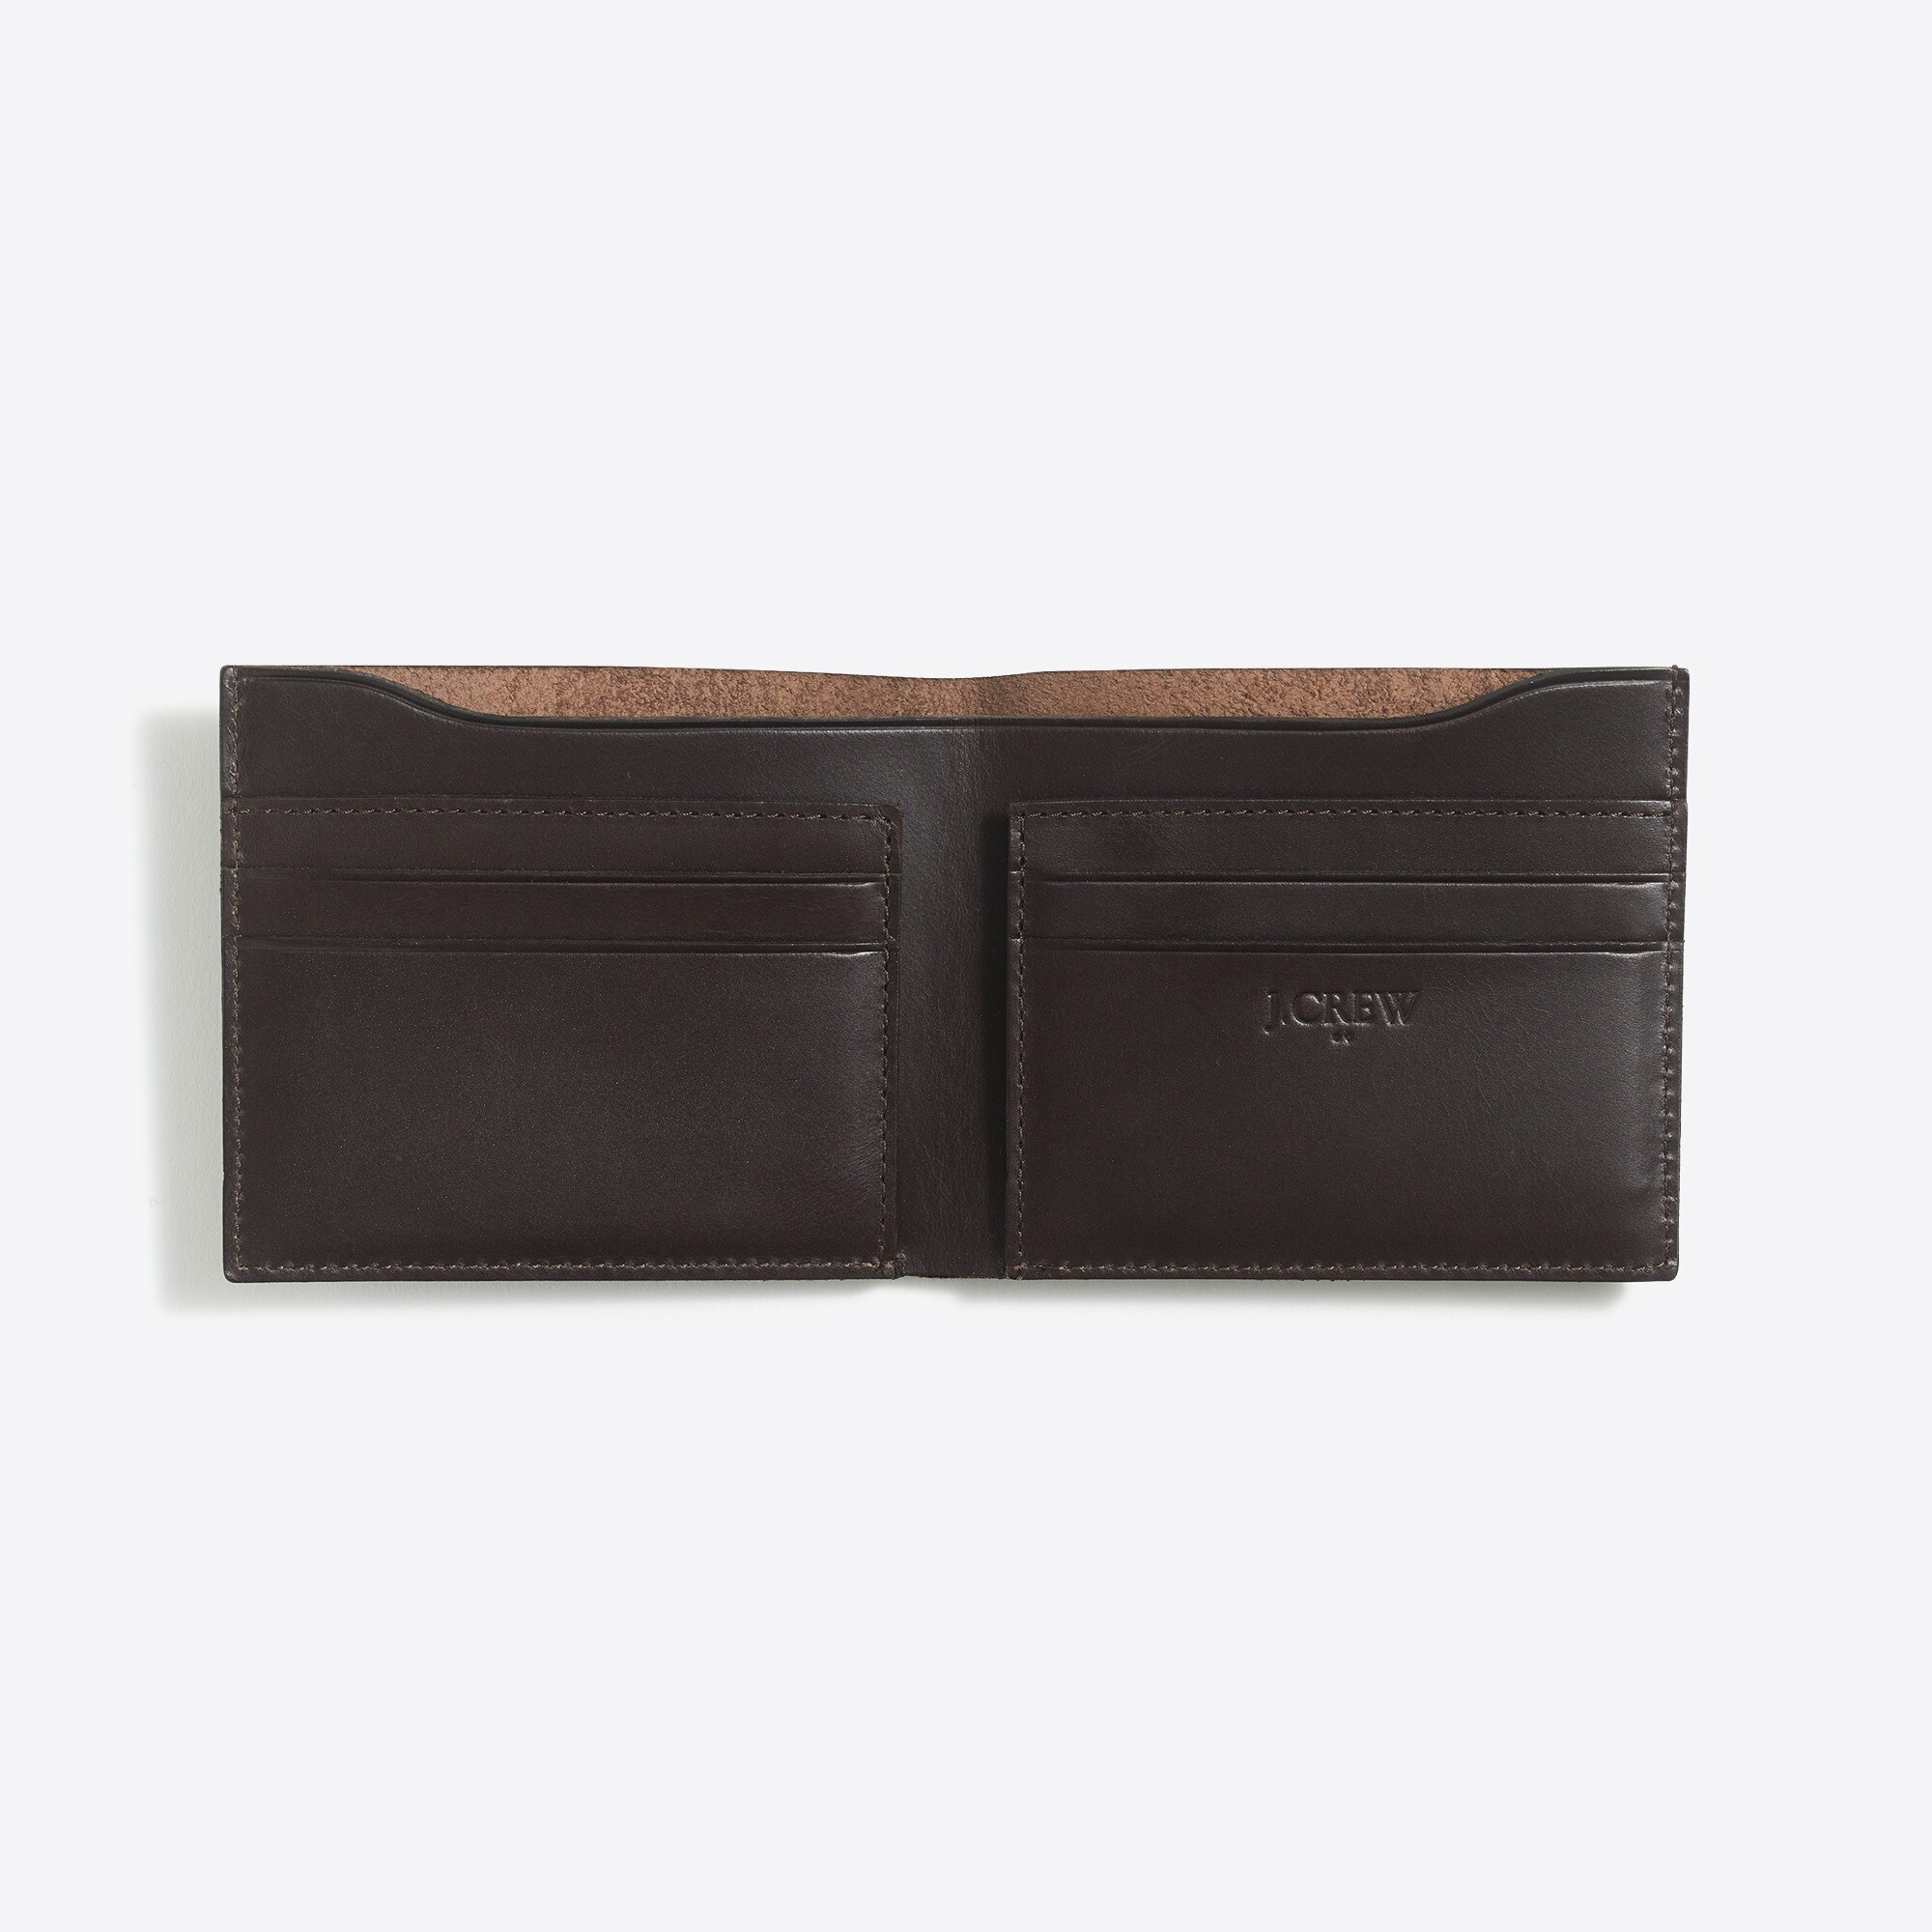 Image 2 for Leather billfold wallet